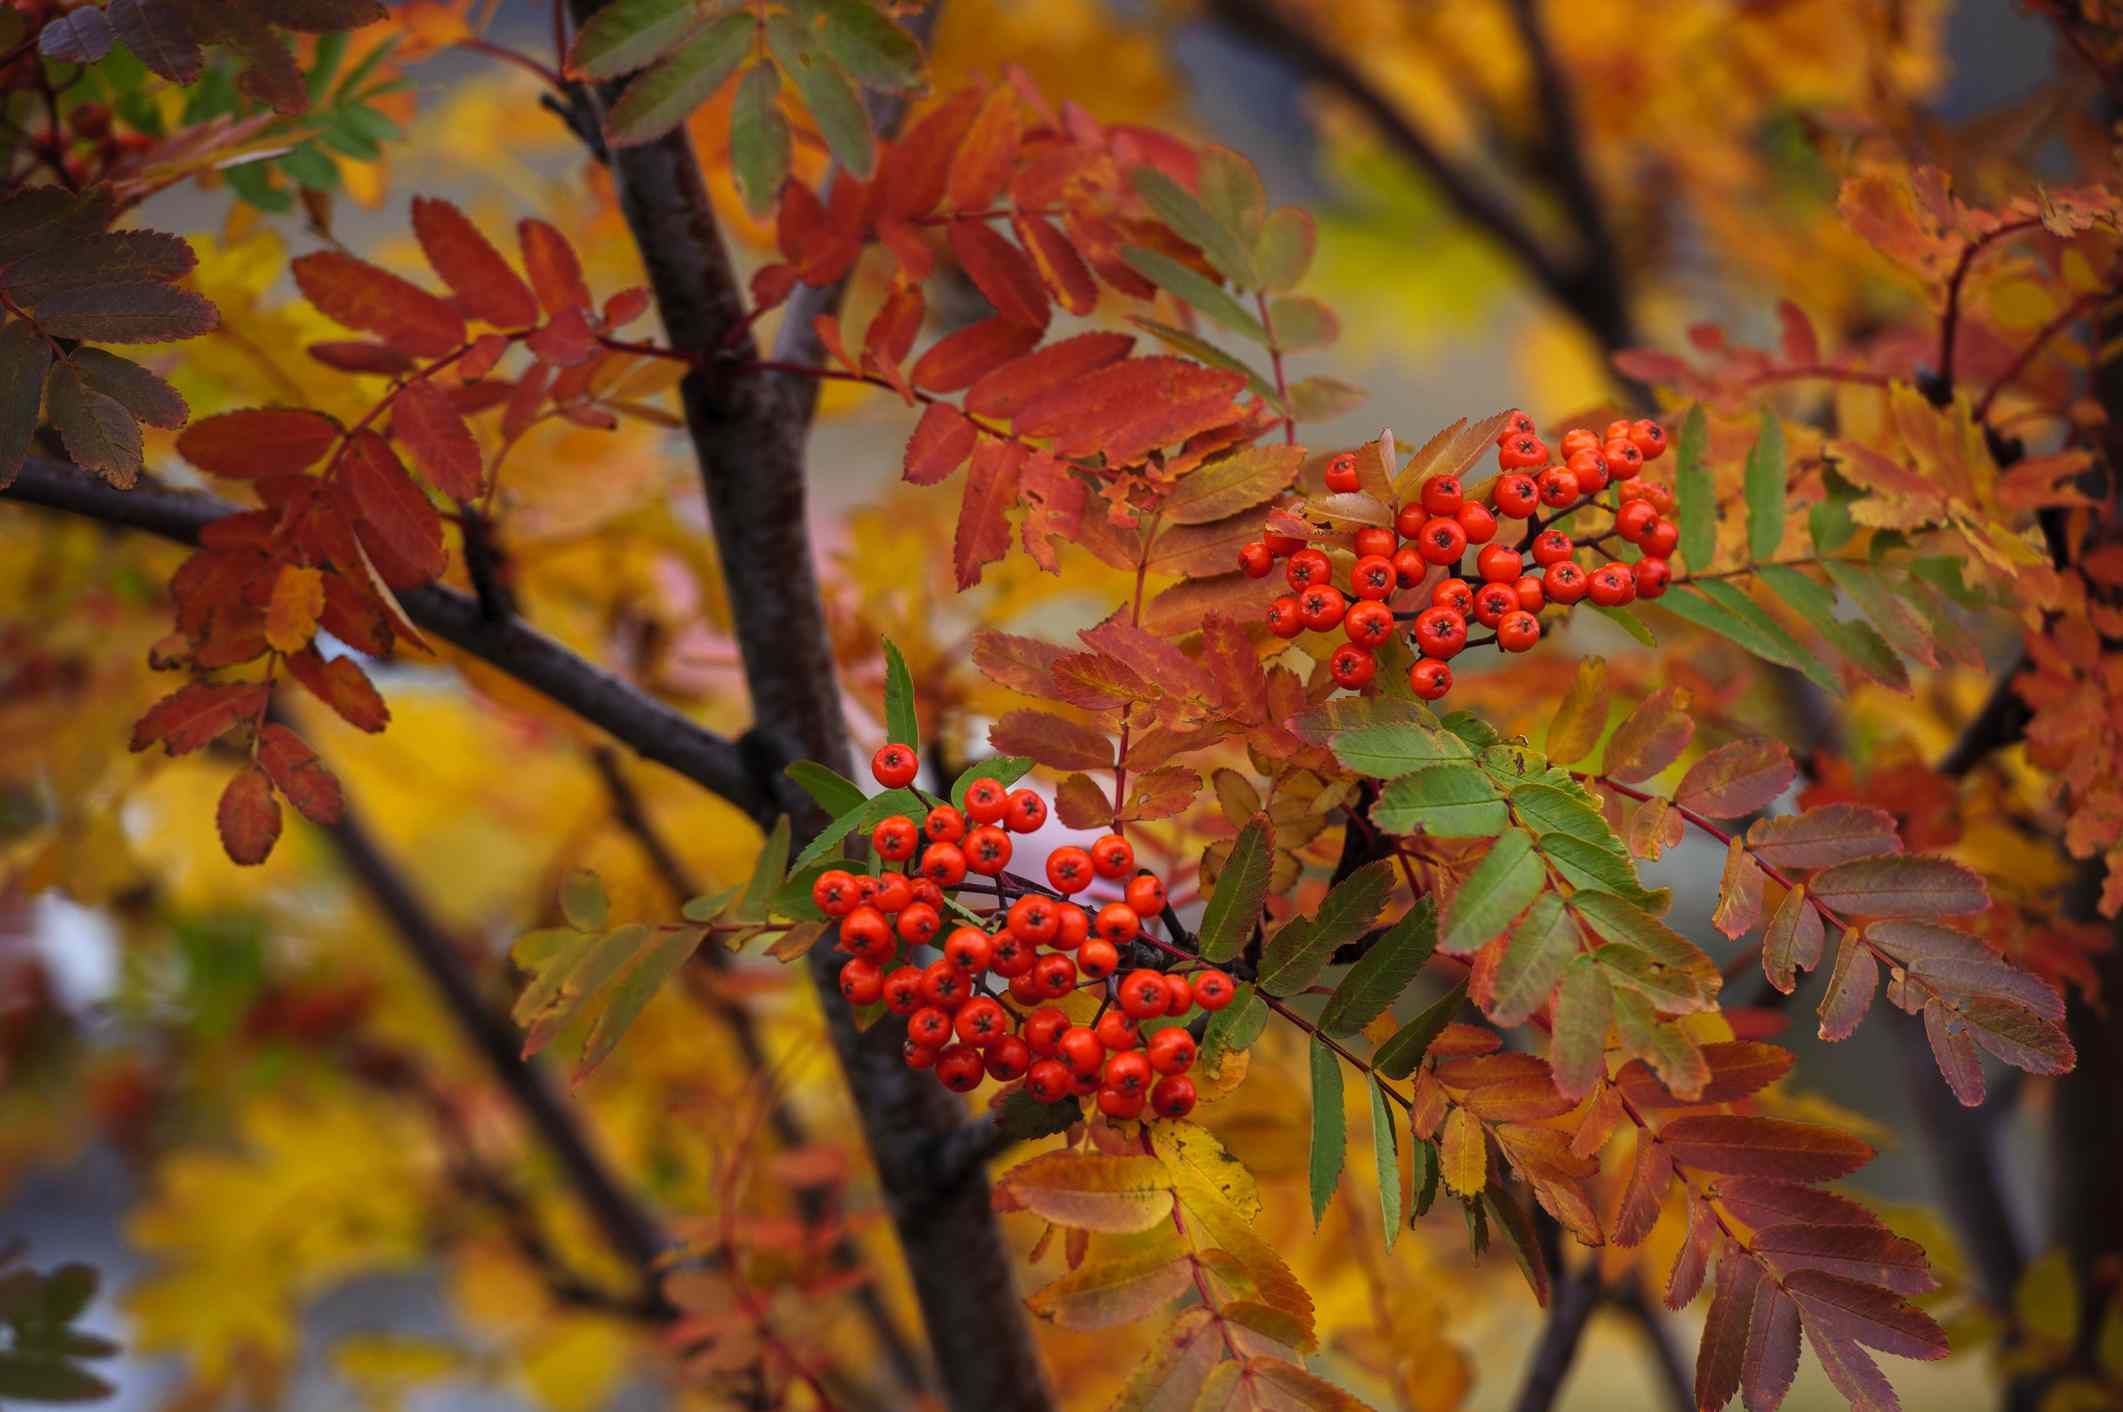 Mountain ash tree with berries.